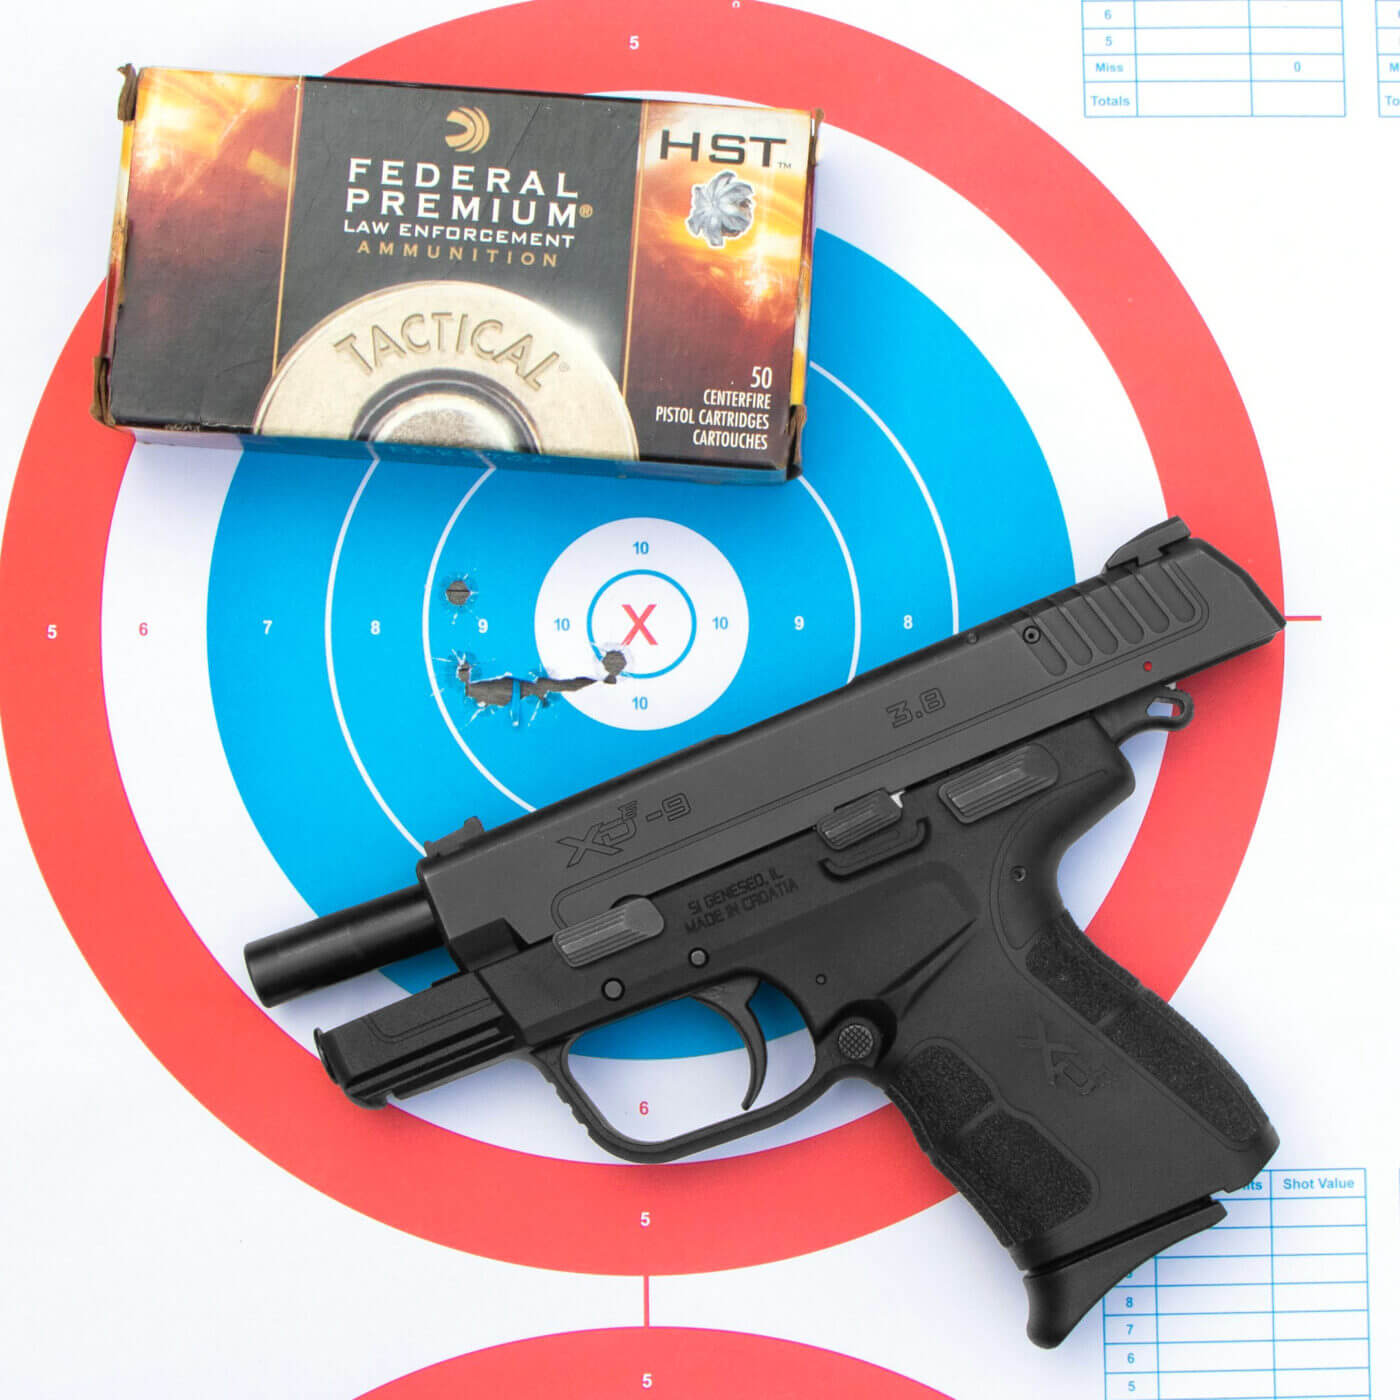 Test target from XD-E